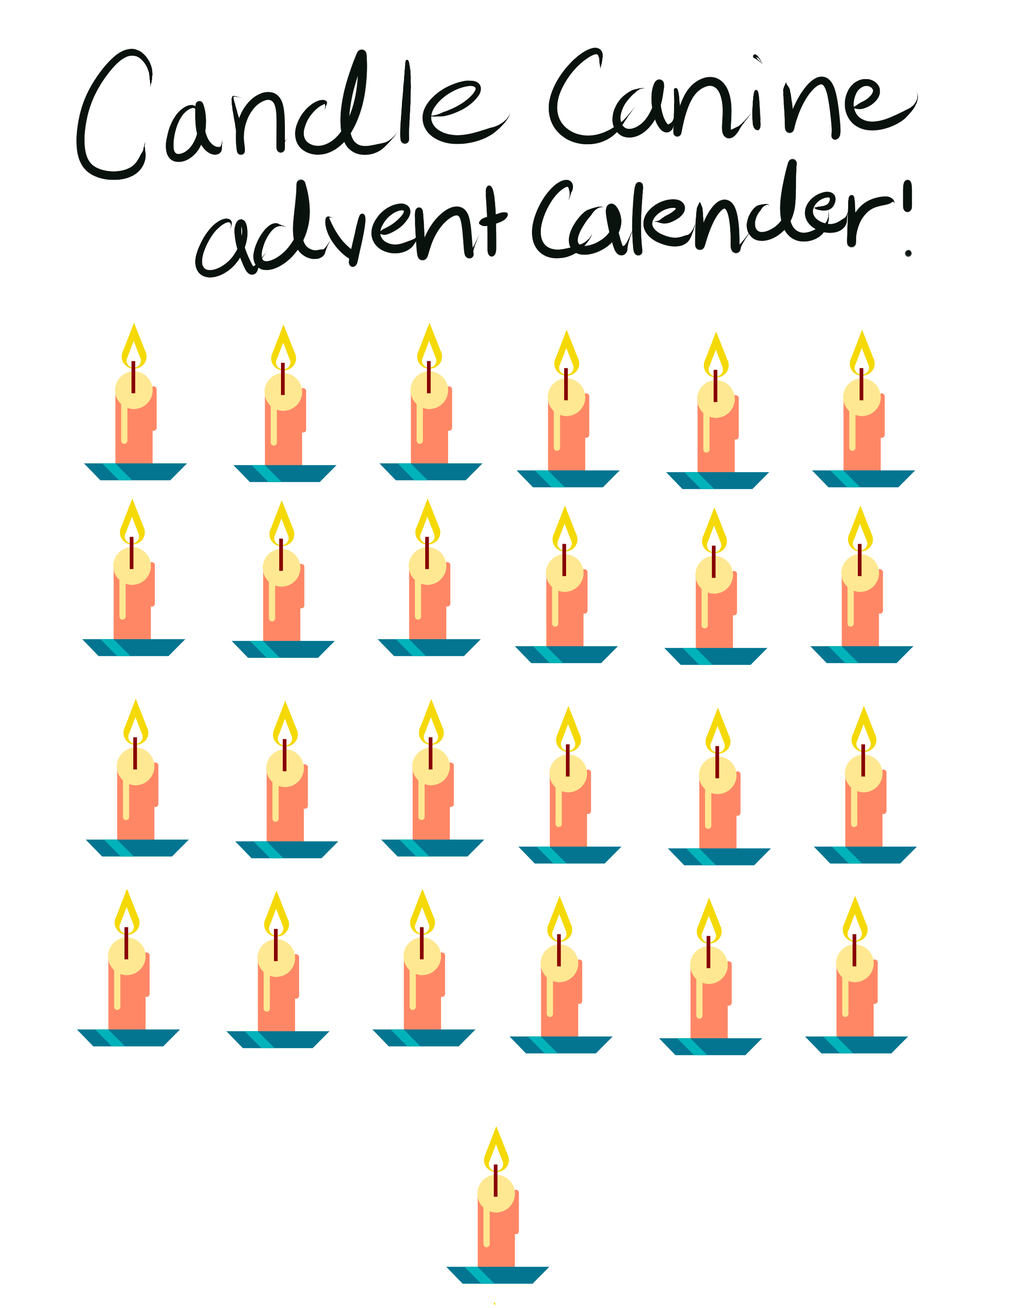 Most recent image: Candle Canine Advent Calender 18 days still open!!